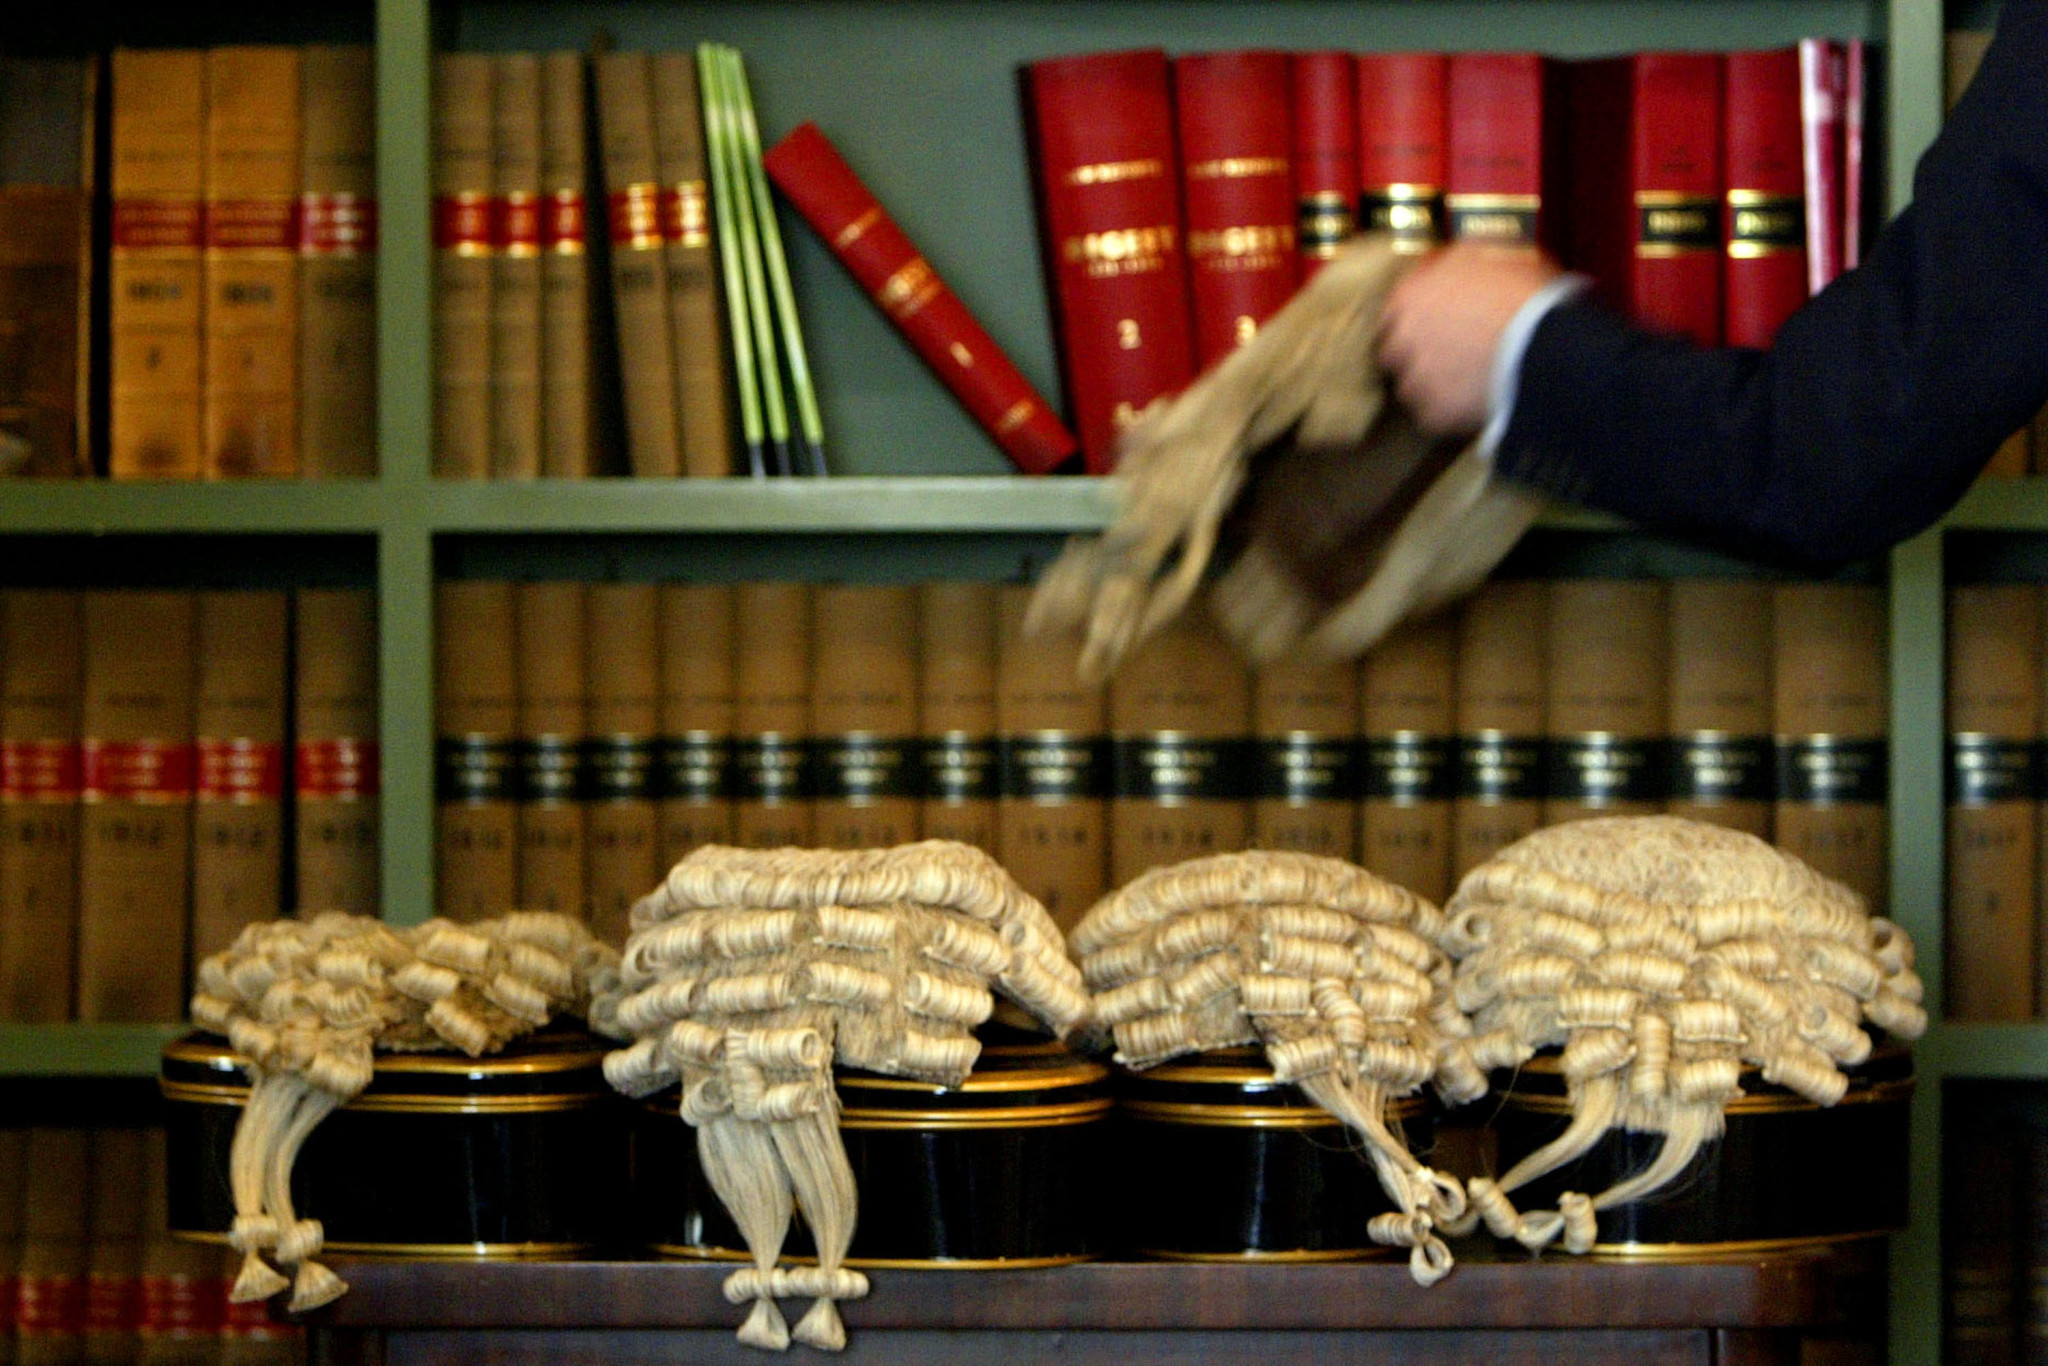 British Home Secretary Announces Proposed Changes In Sentencing Laws